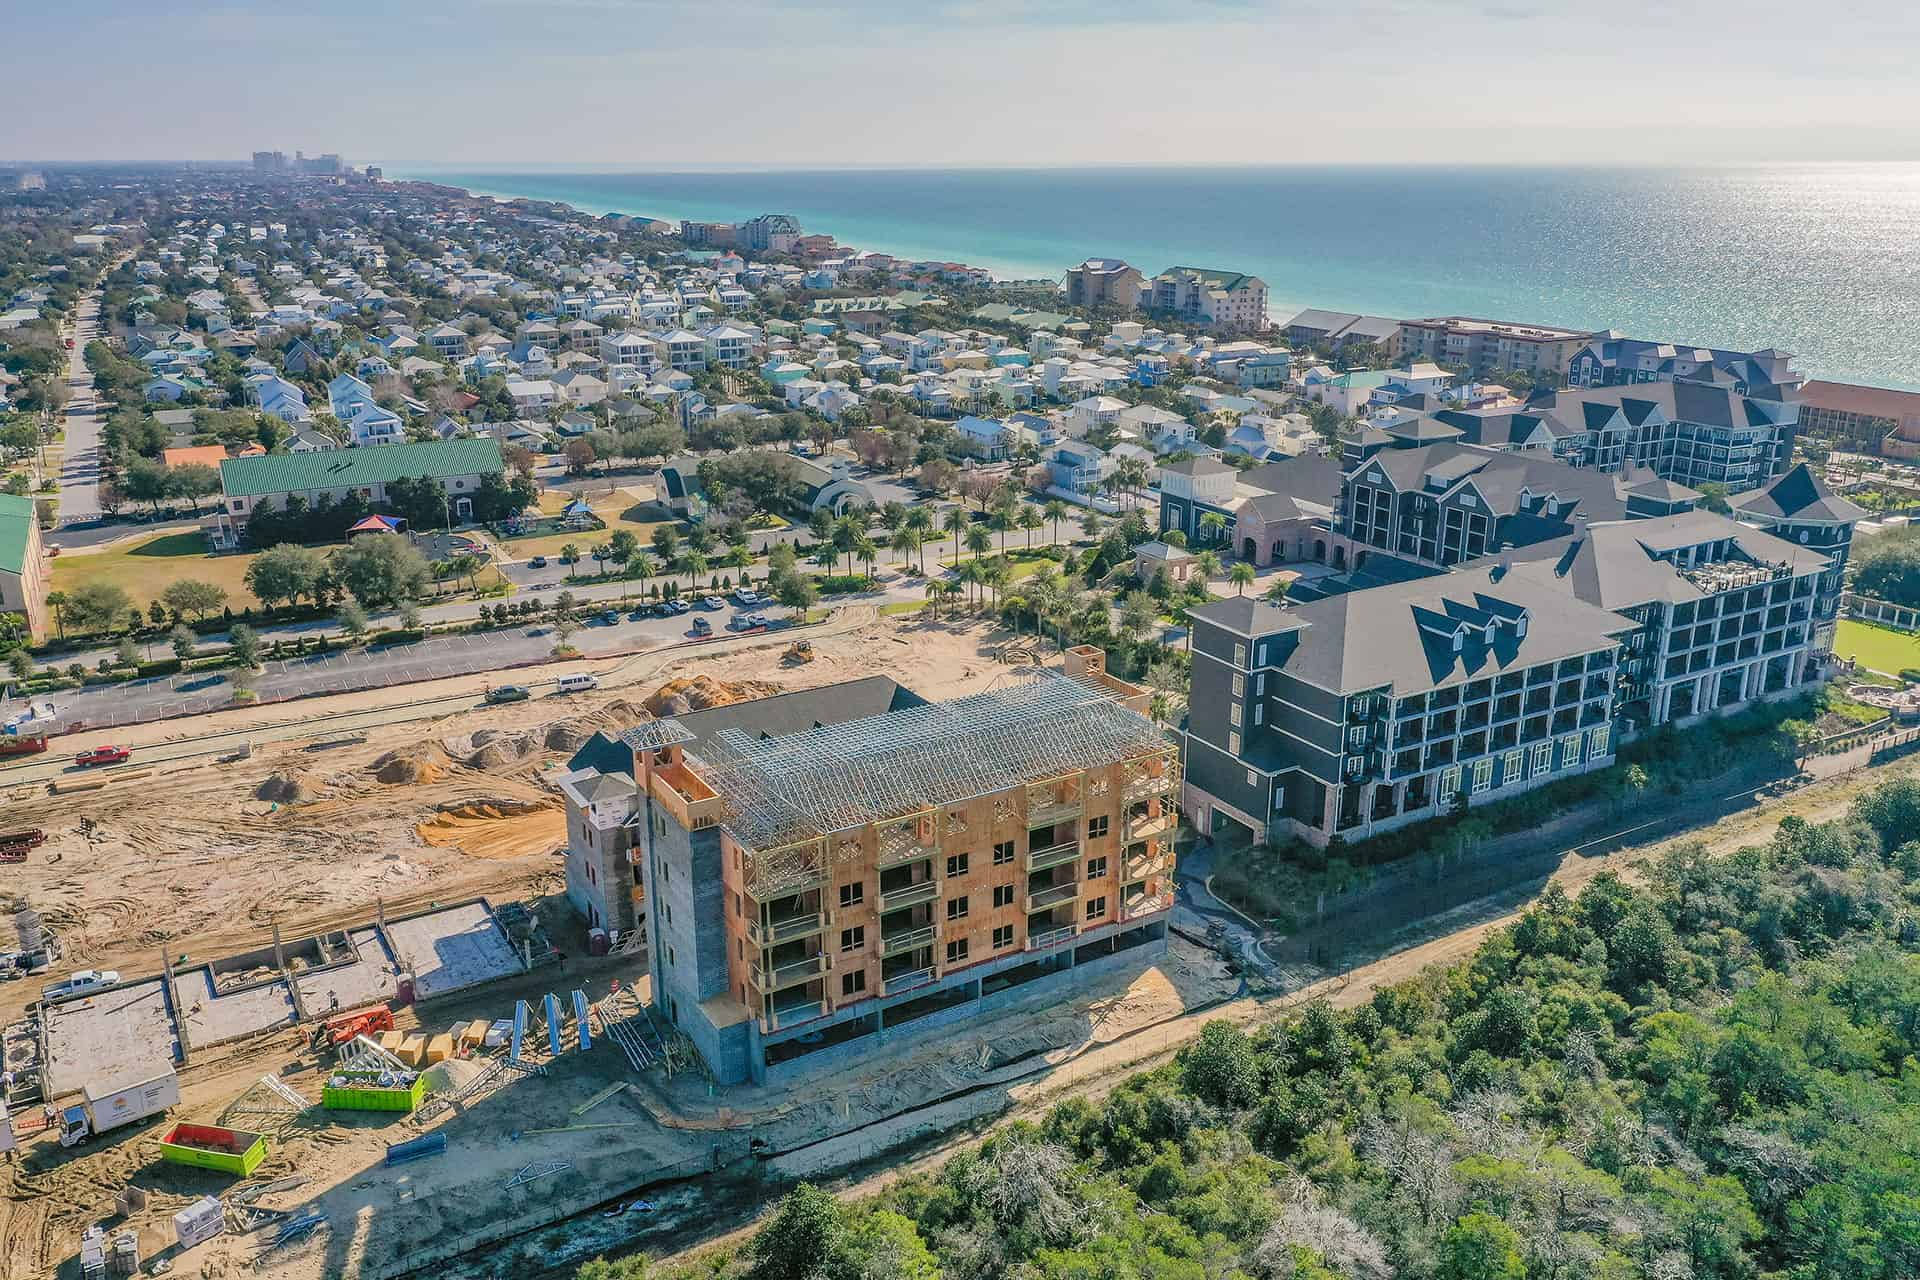 Parkside_at_Henderson_Beach_Resort_January_2021 drone photo looking east